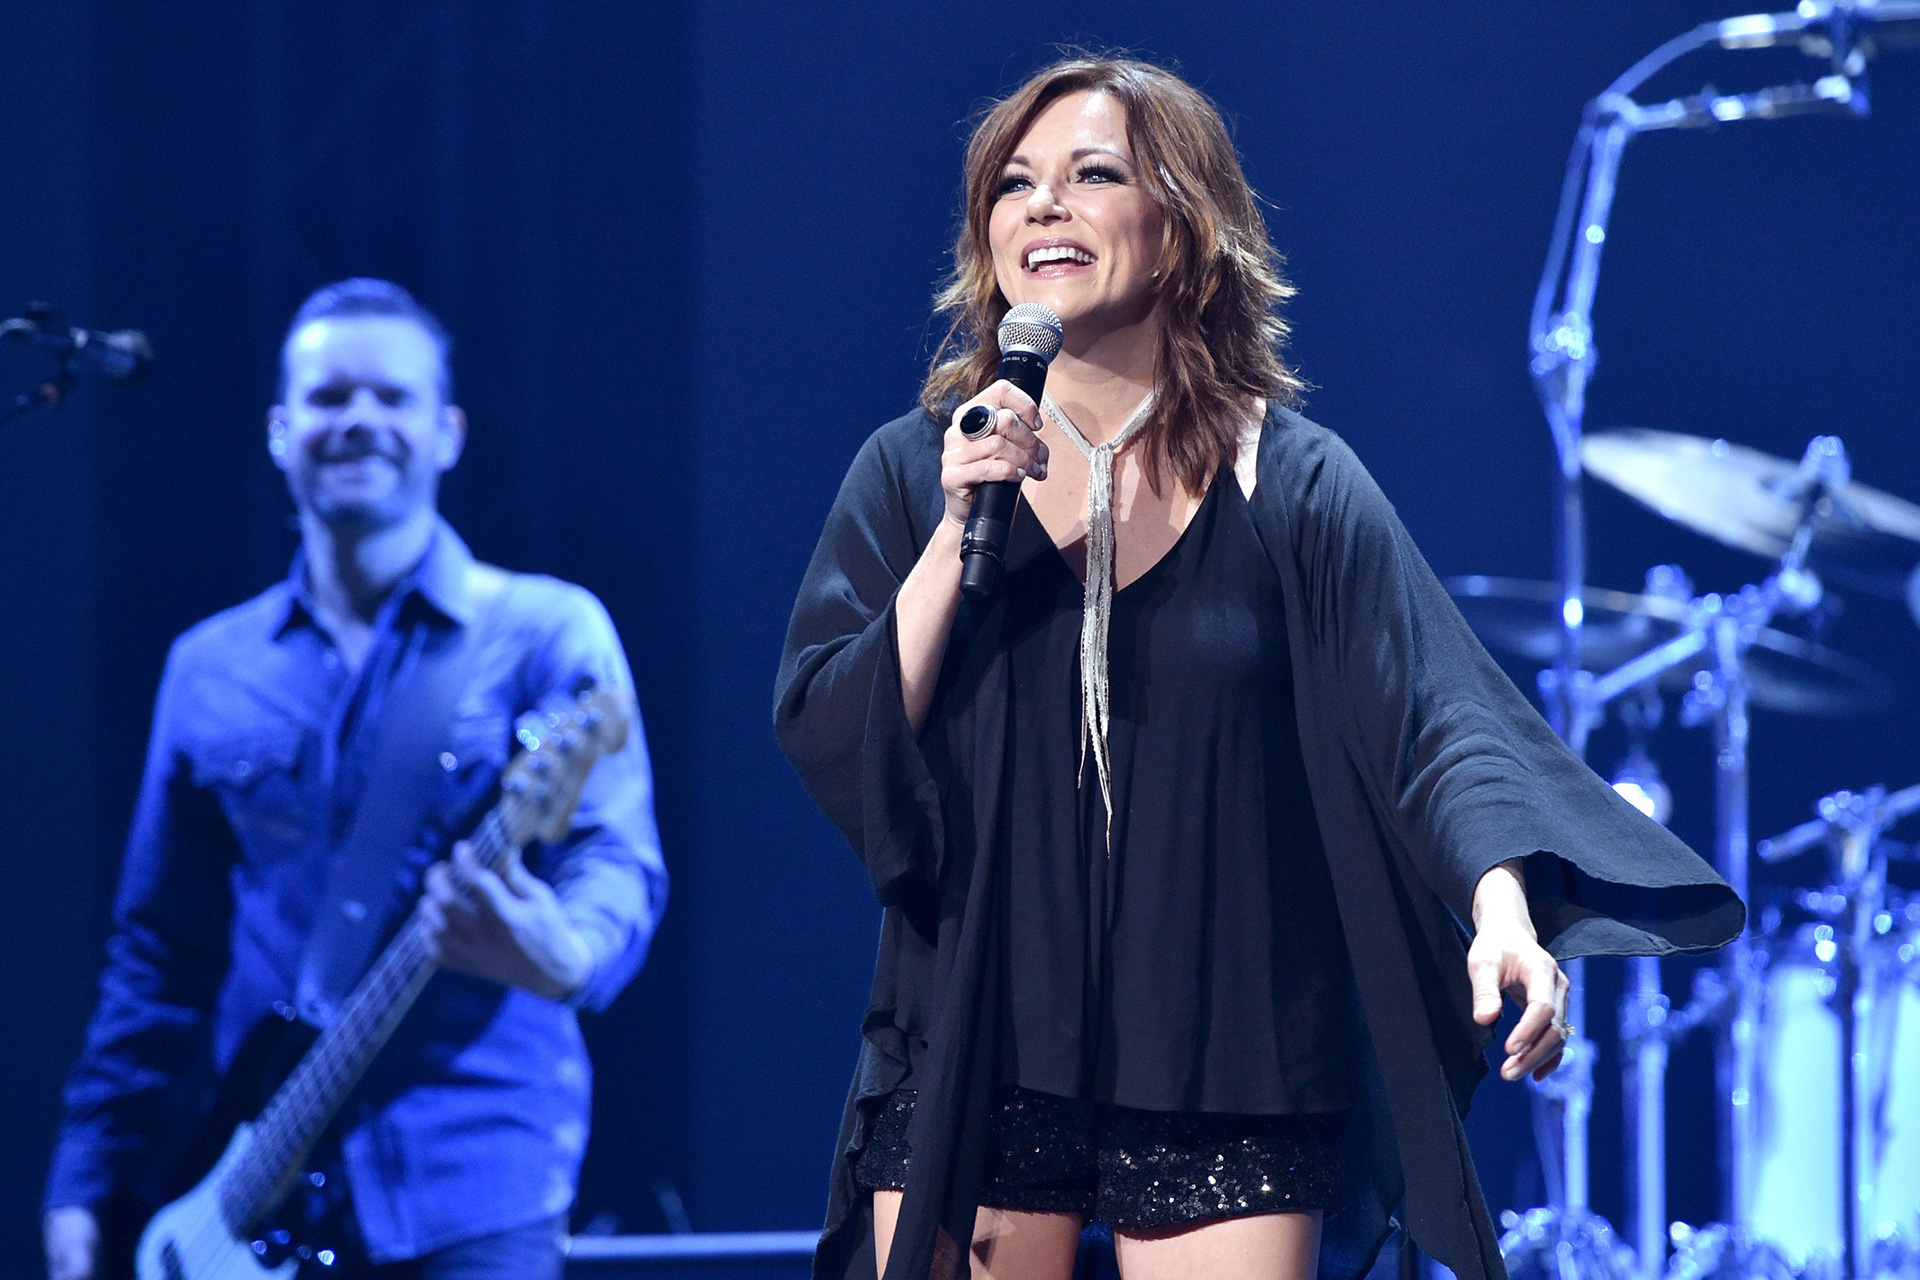 Martina McBride; Photo by John Shearer/Country Rising/Getty Images